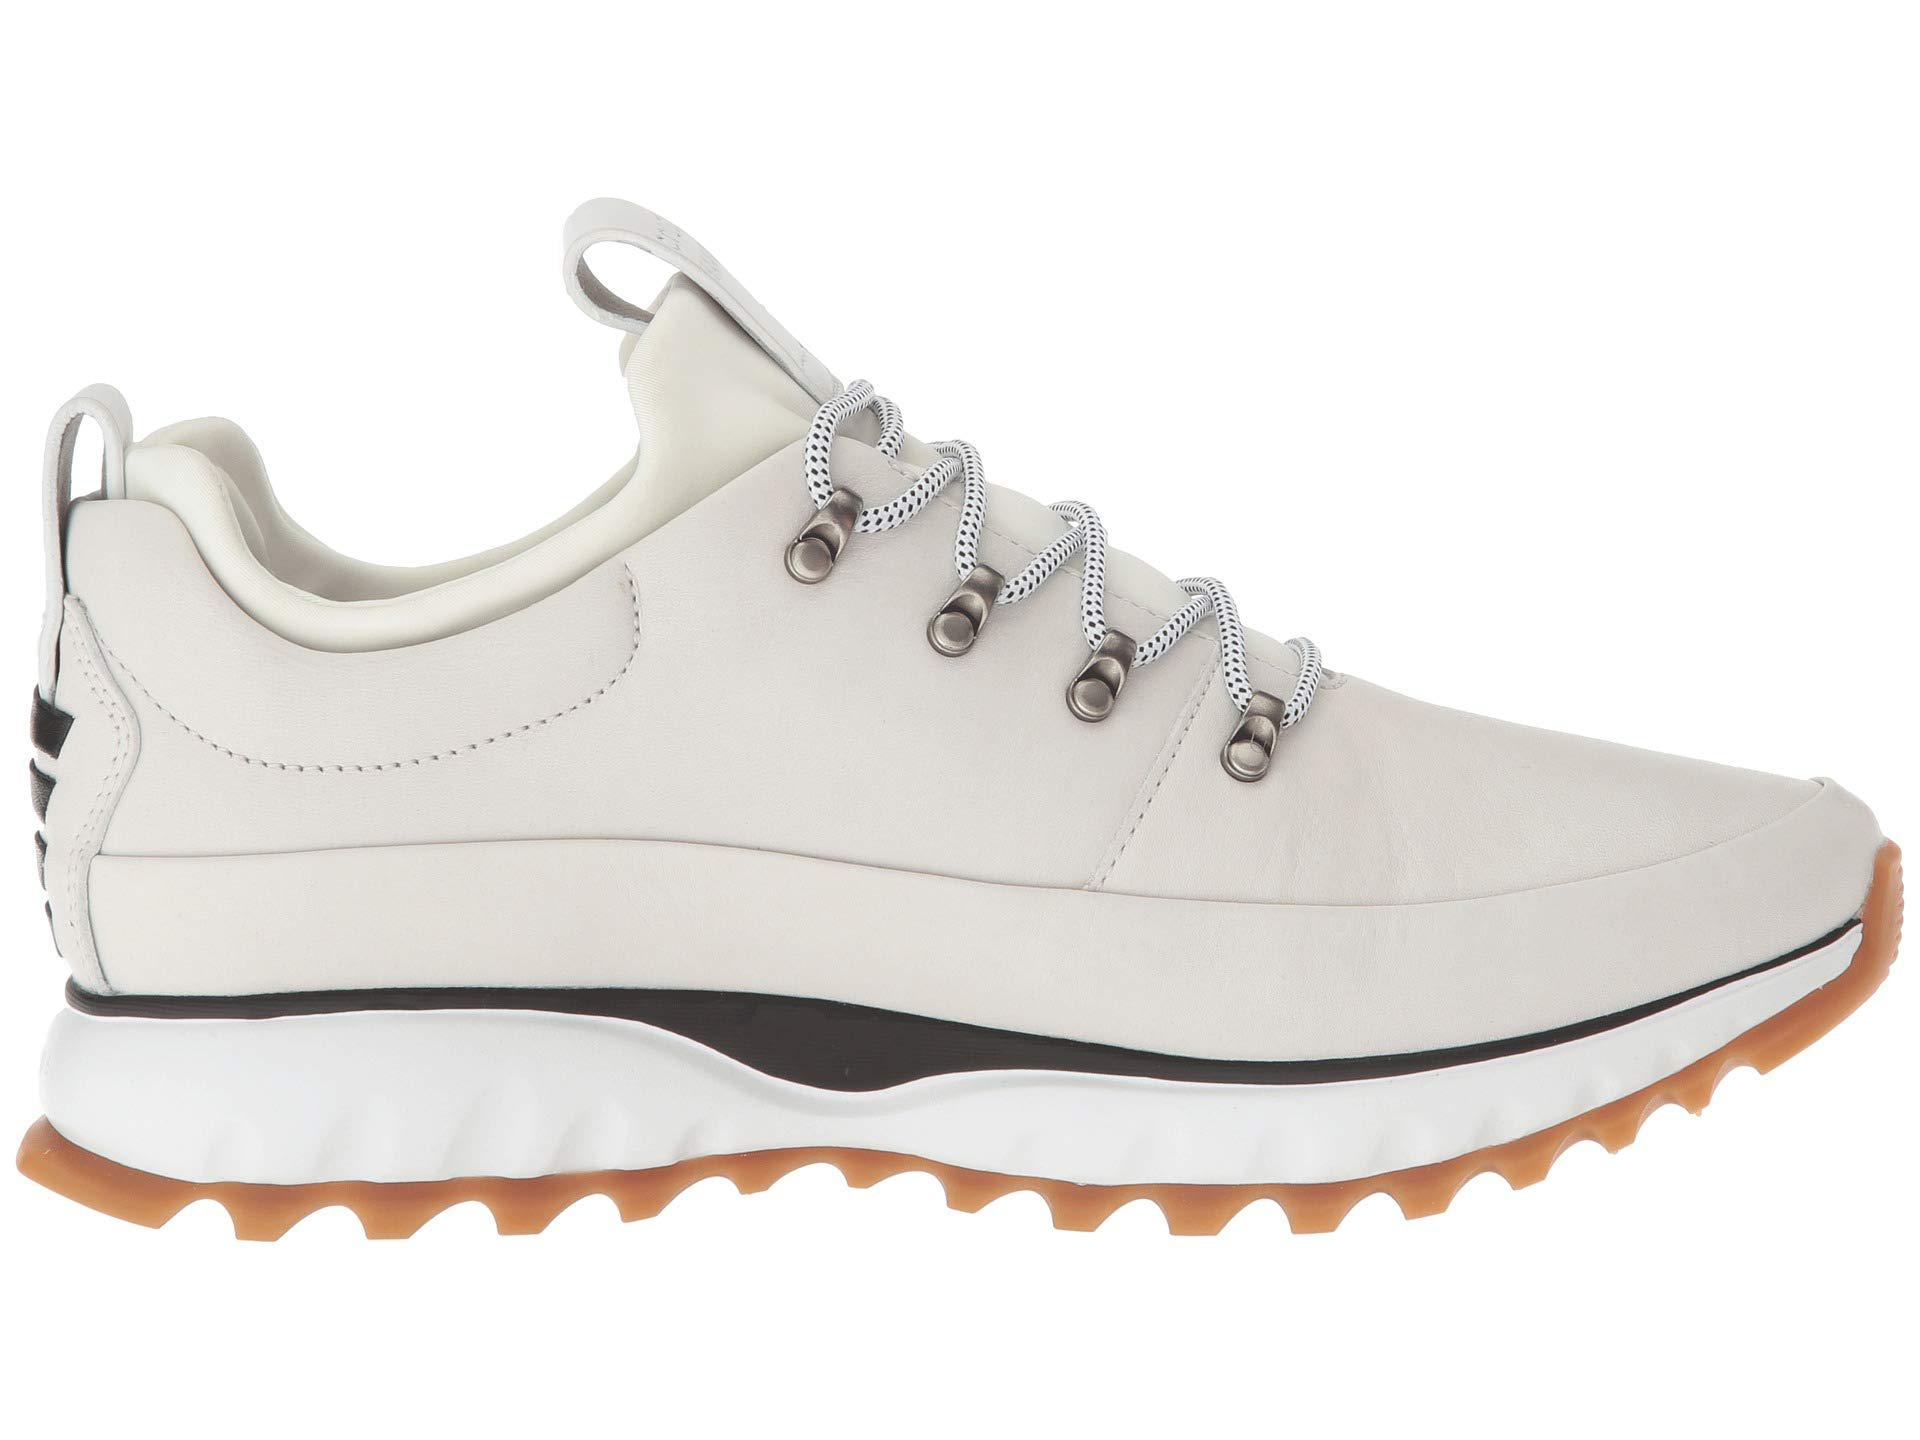 Cole Haan Leather Zerogrand Explore All